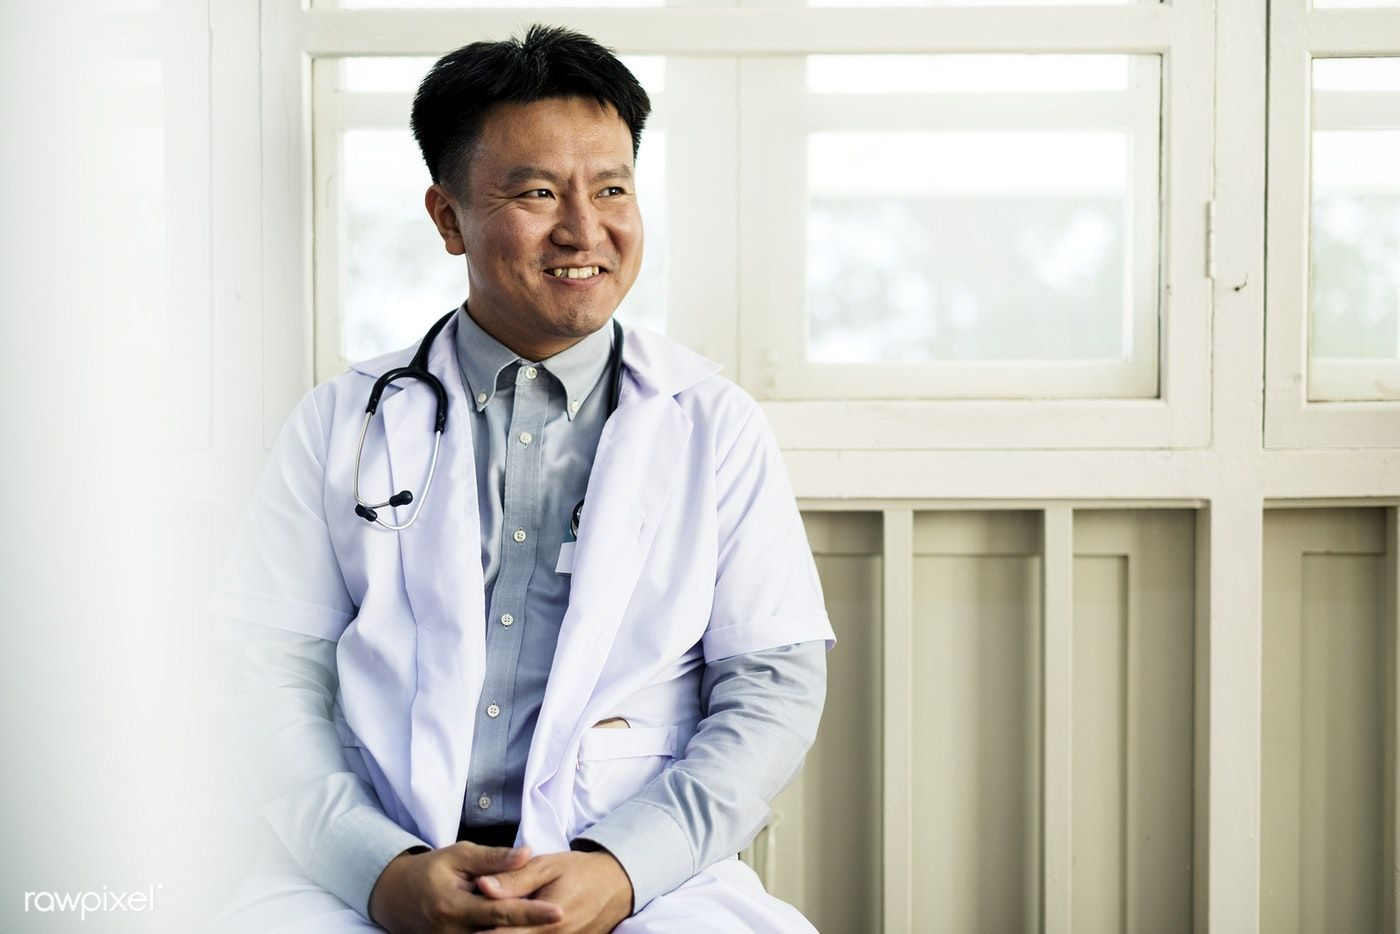 Download premium photo of An Asian doctor working at a